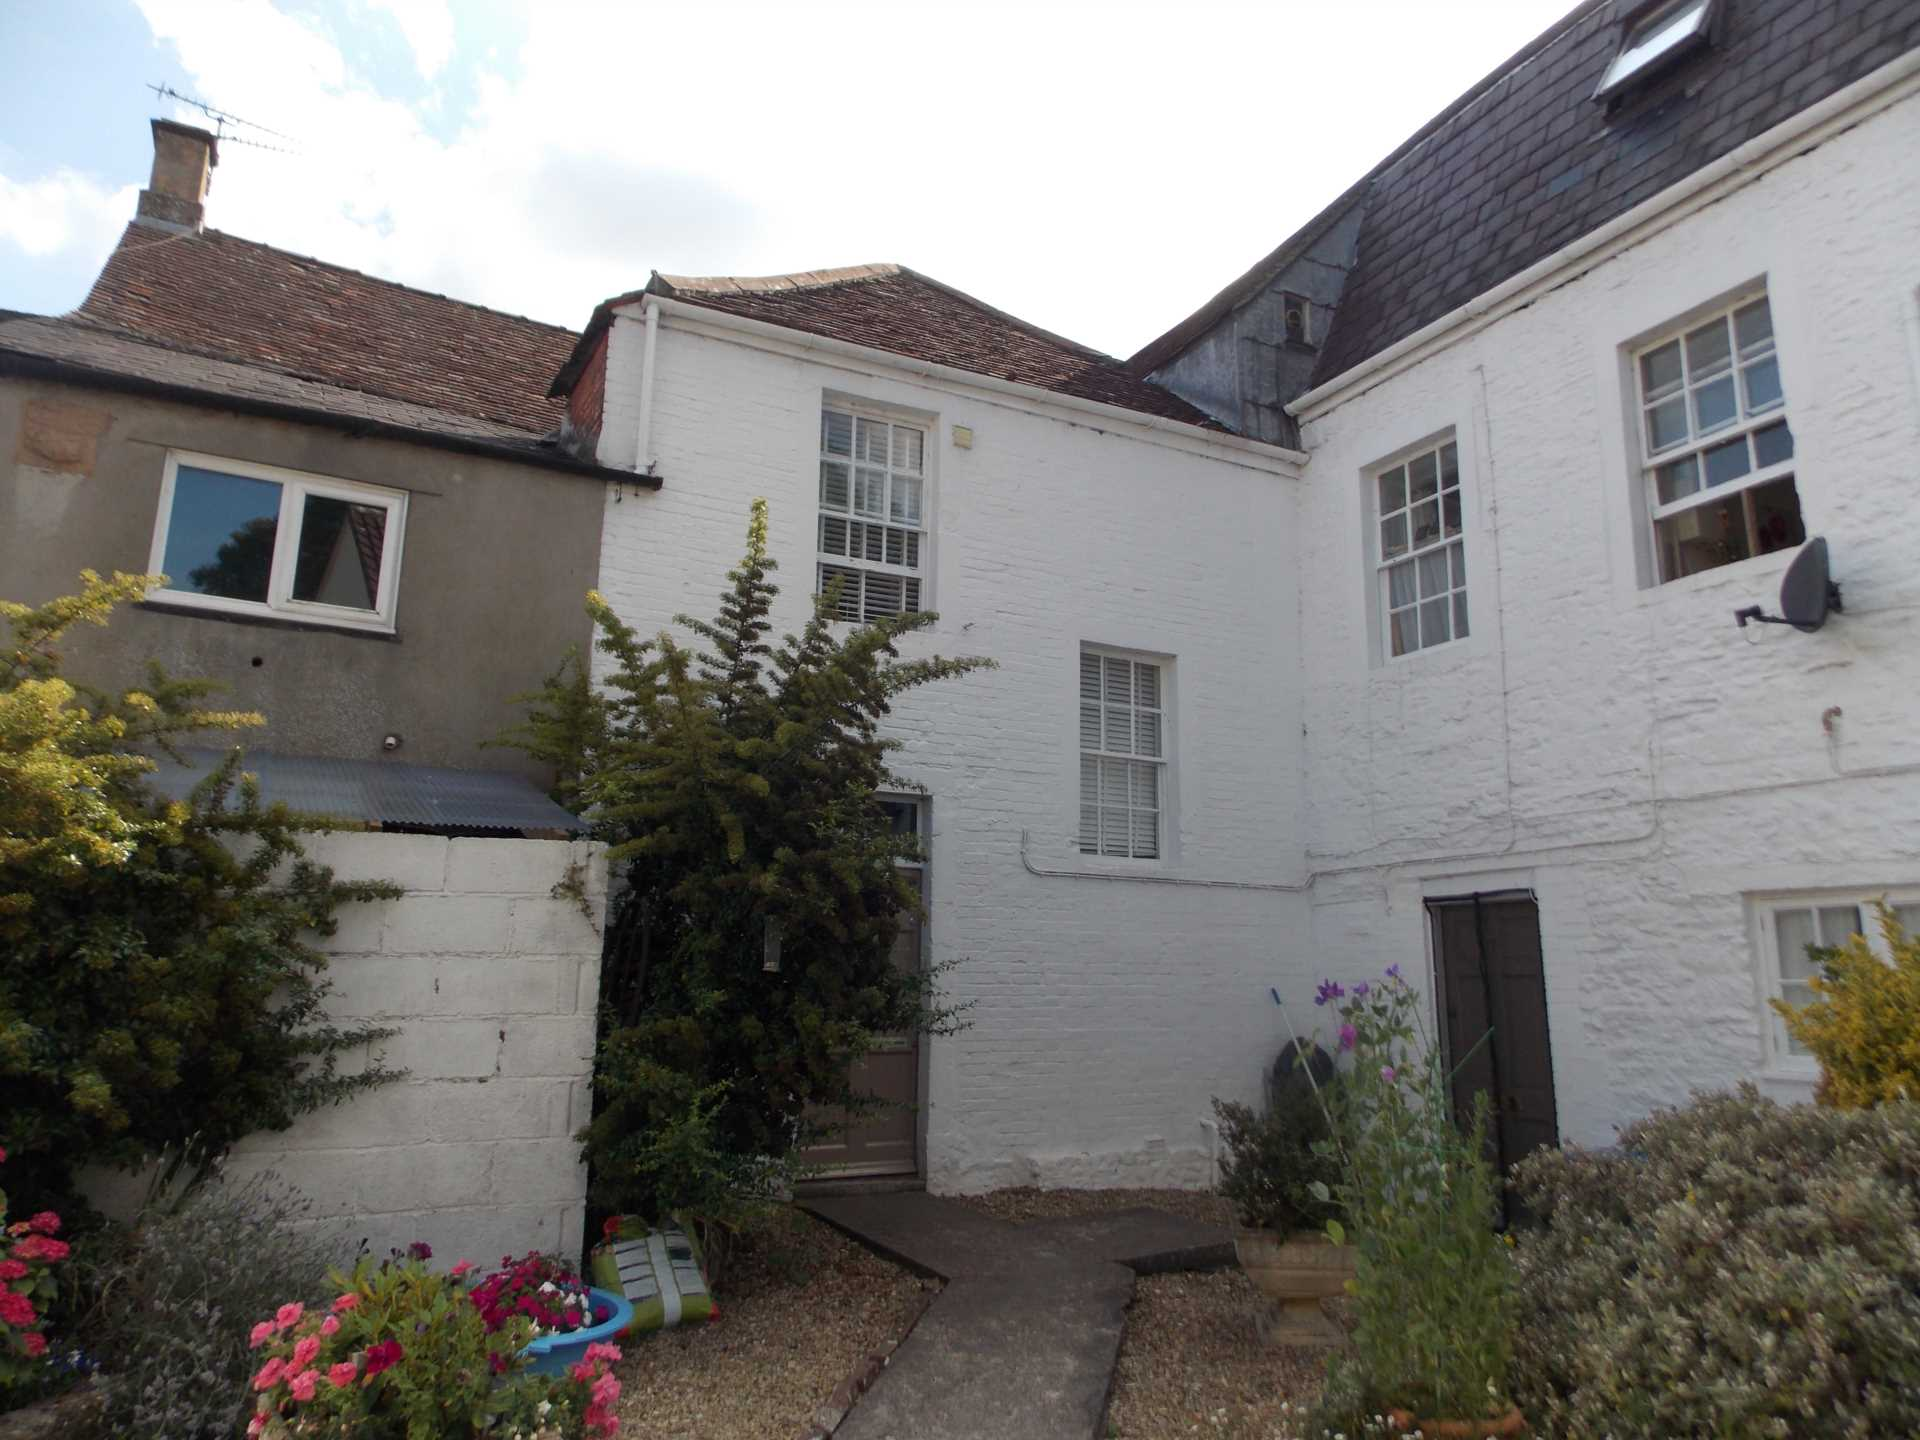 Swallows Property Letting - 1 Bedroom Flat, Christchurch Street East, Frome